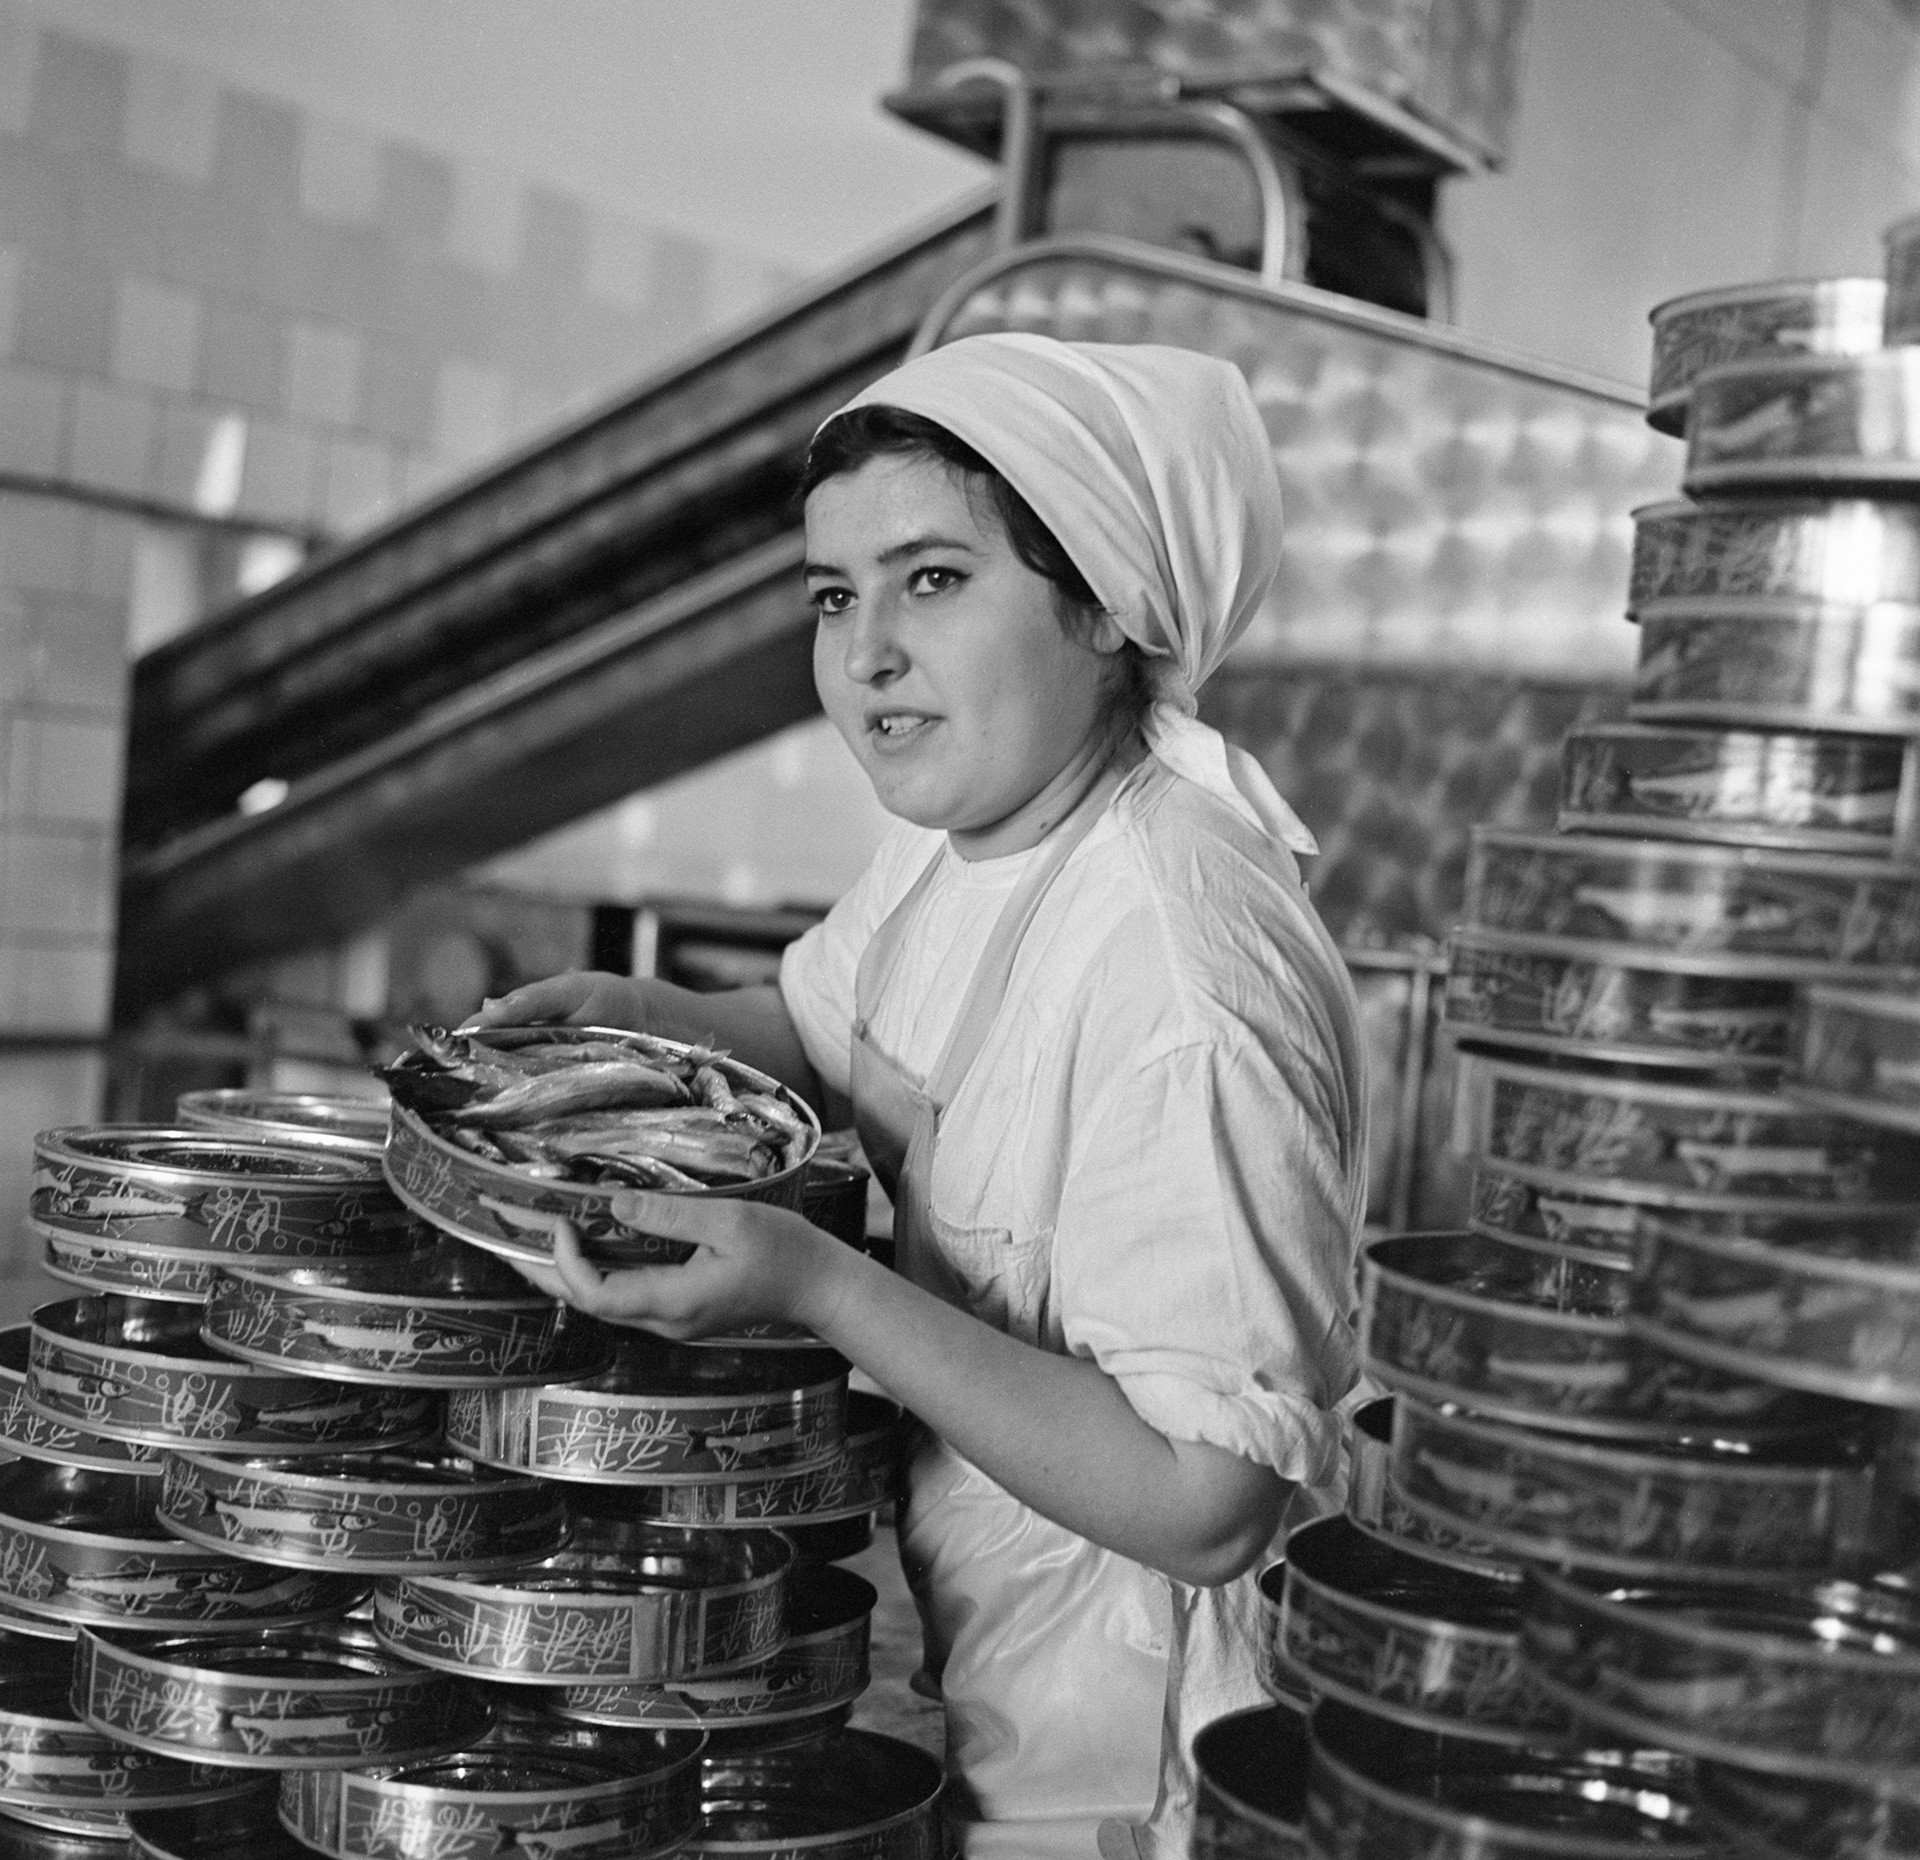 The Murmansk fish processing plant, 1971.